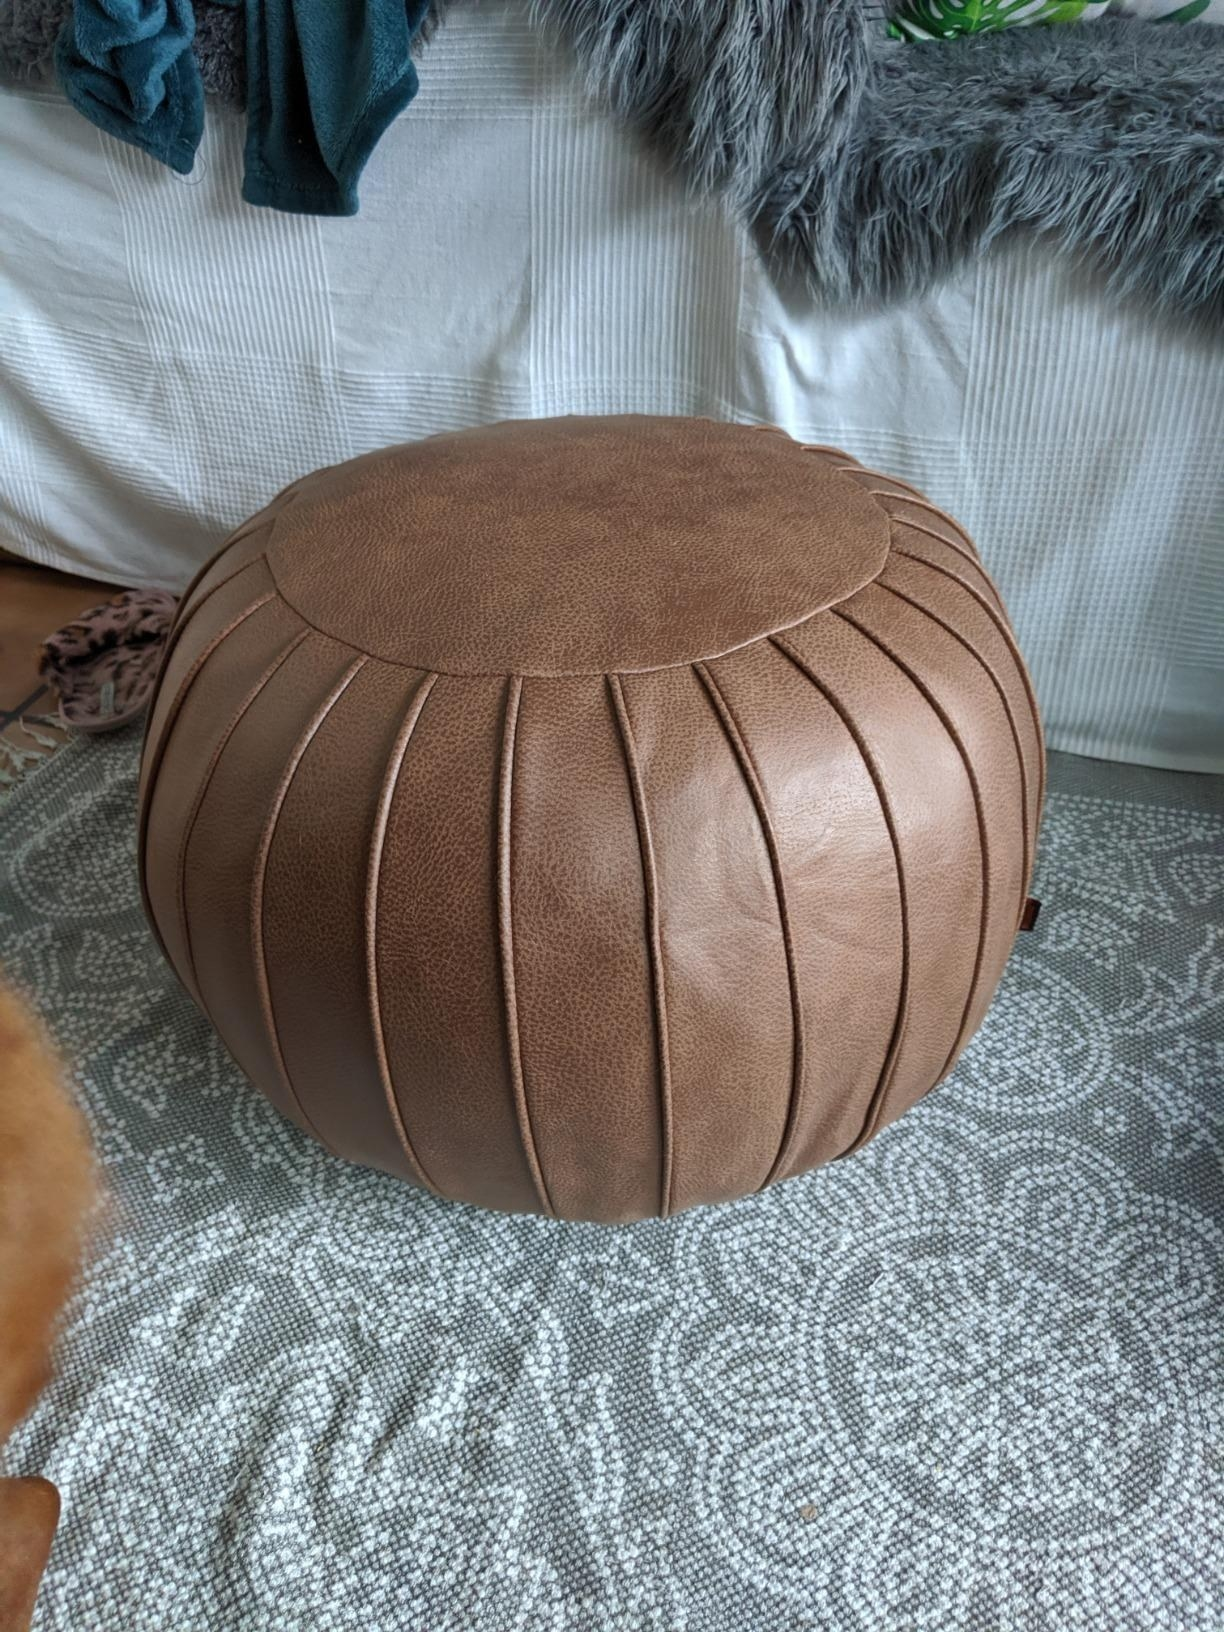 The brown circular pouf with a vertical line pattern around the entire thing